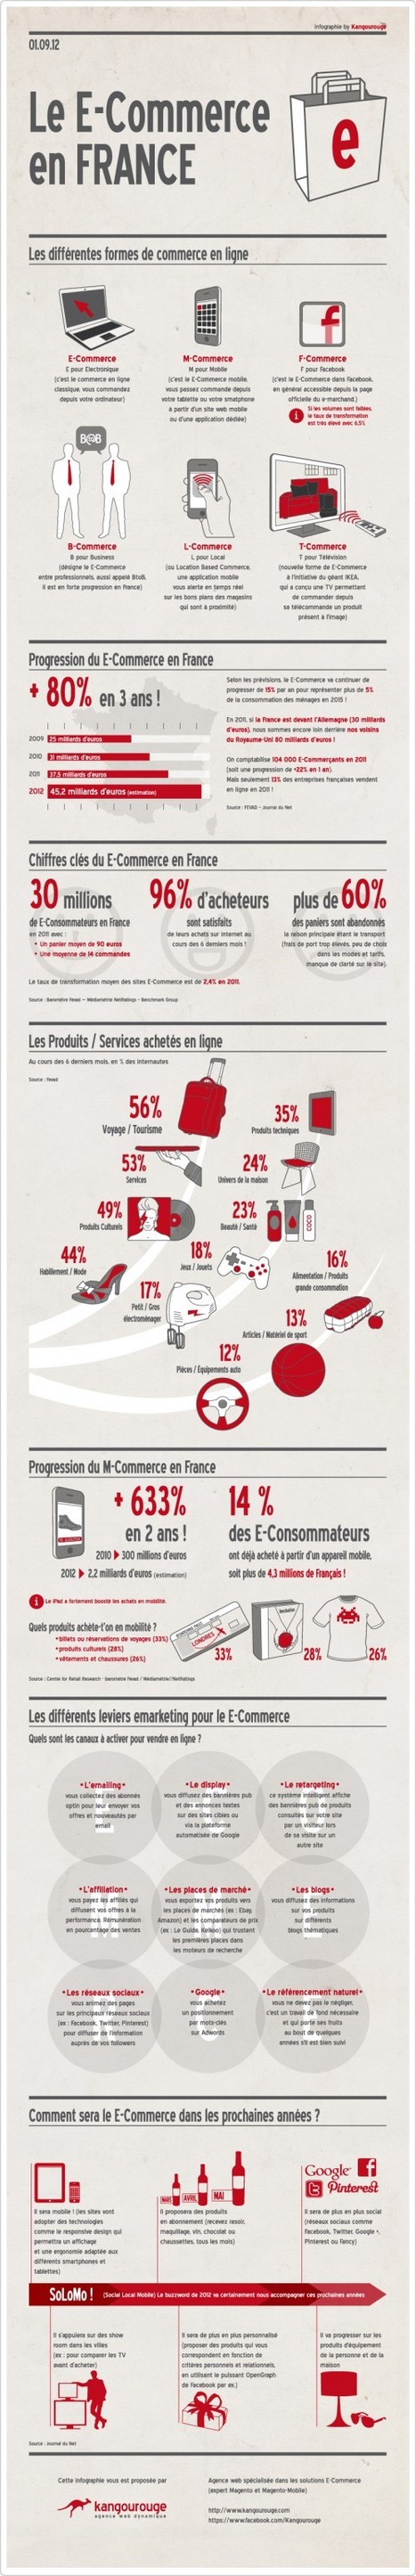 [Infographie] Le e-Commerce en France - Websourcing.fr | E-Commerce & Conversion | Scoop.it